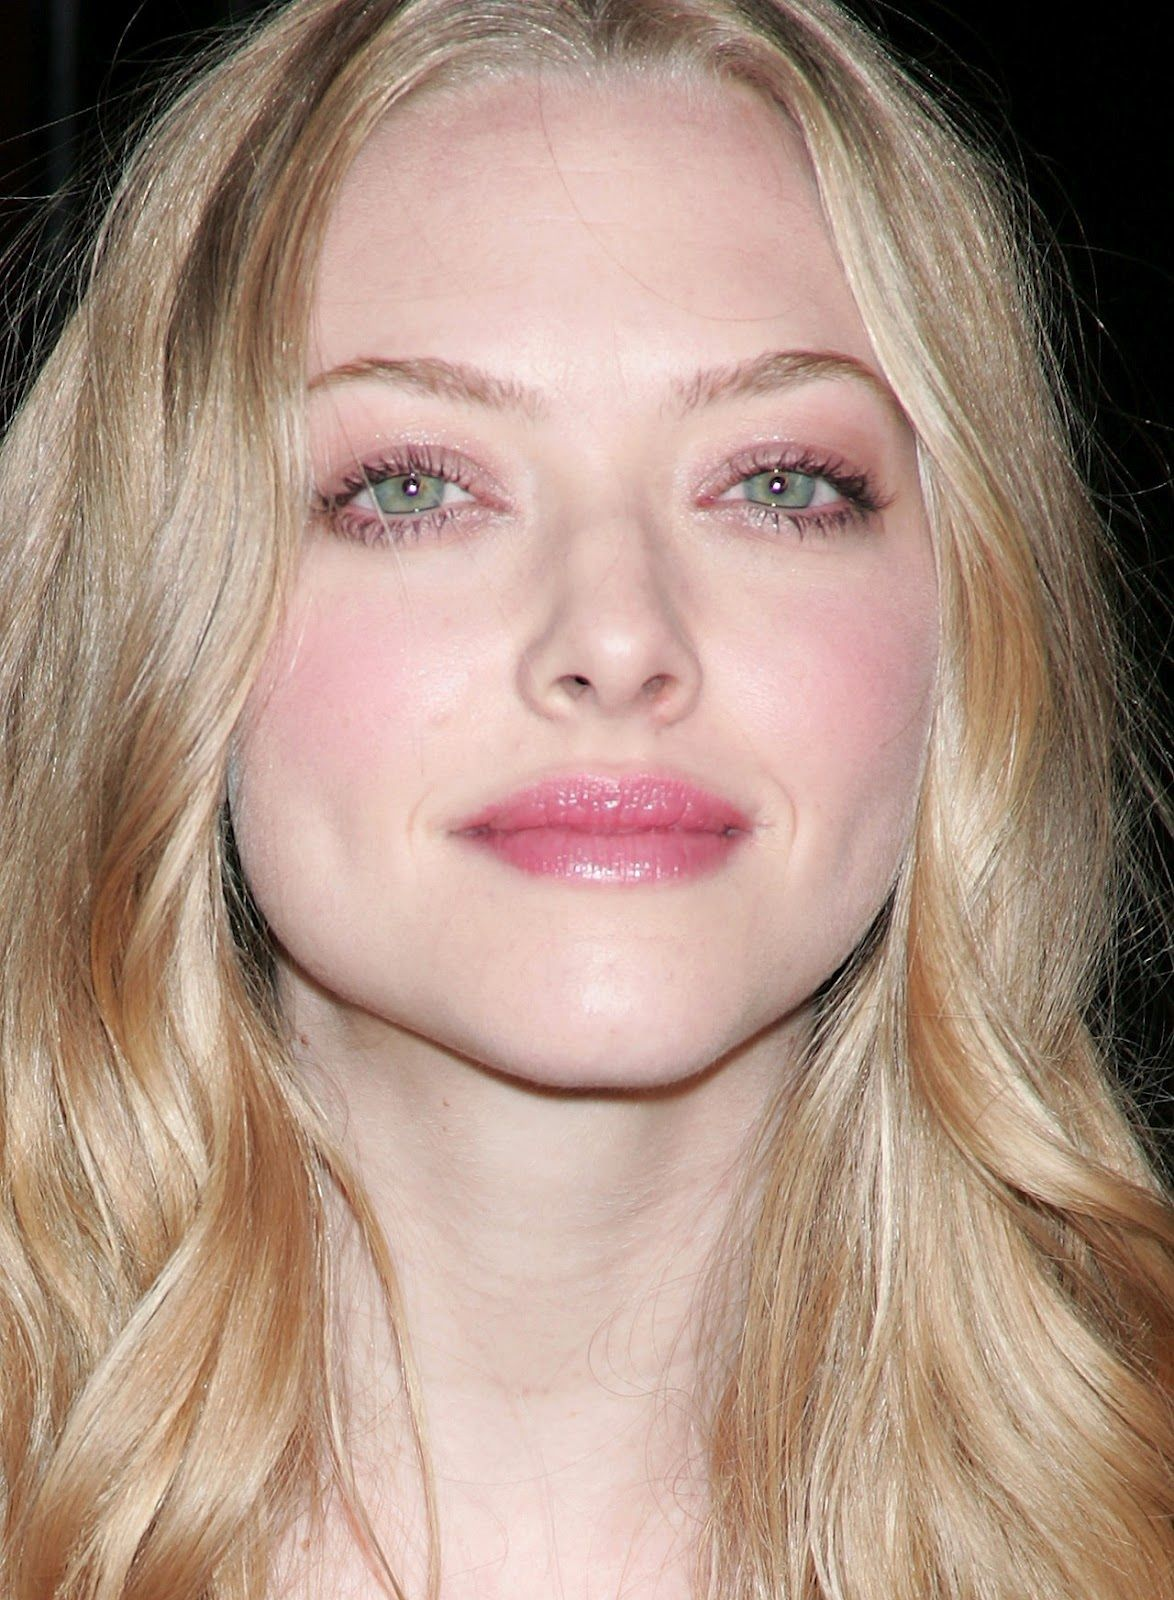 eye-makeup-for-blue-eyes-blonde-hair-and-pale-skin-259971413